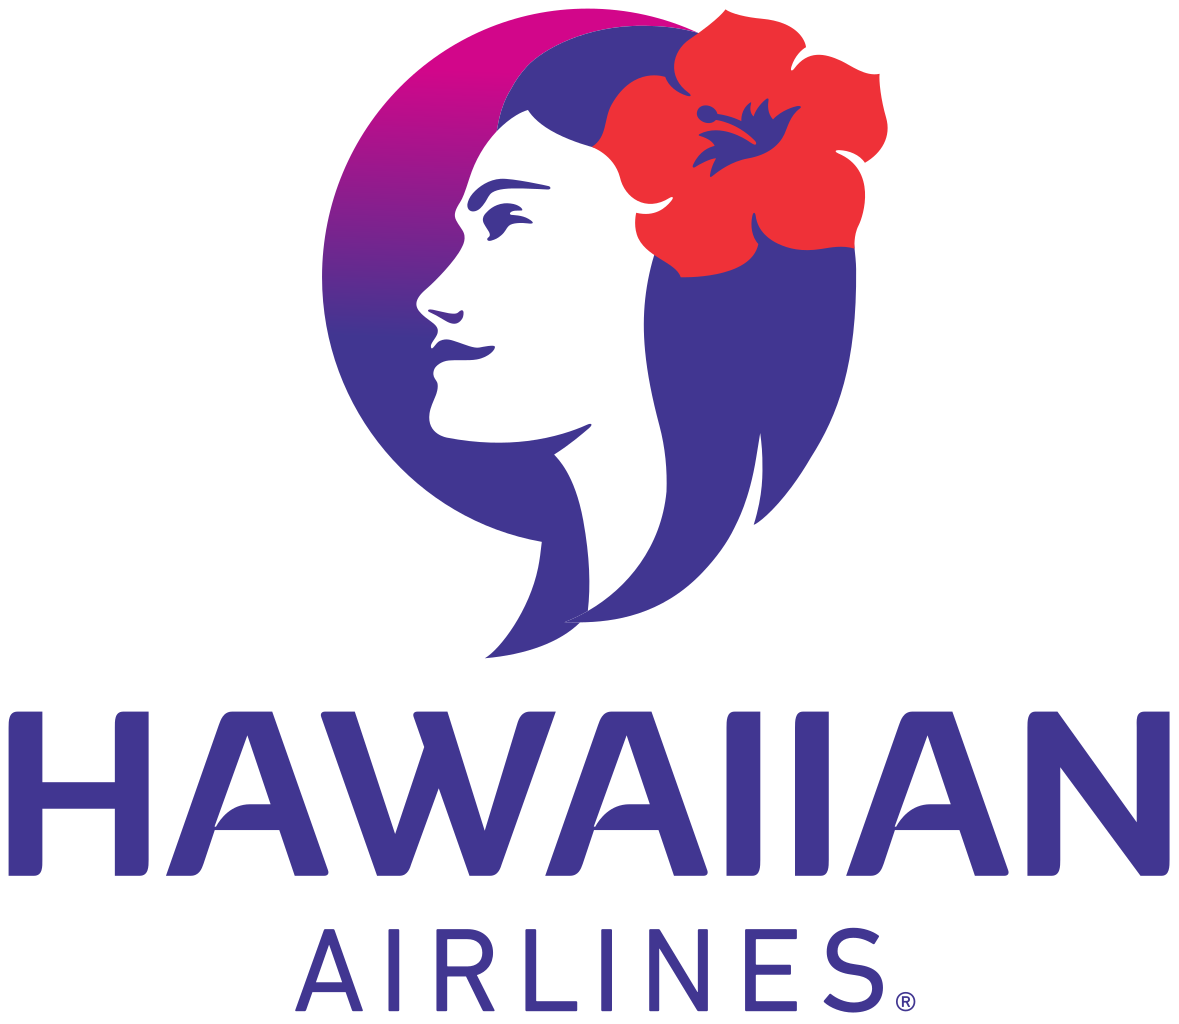 Los Angeles to Kauai Hawaii $376 RT Nonstop on Hawaiian Airlines (limited Jan Travel)